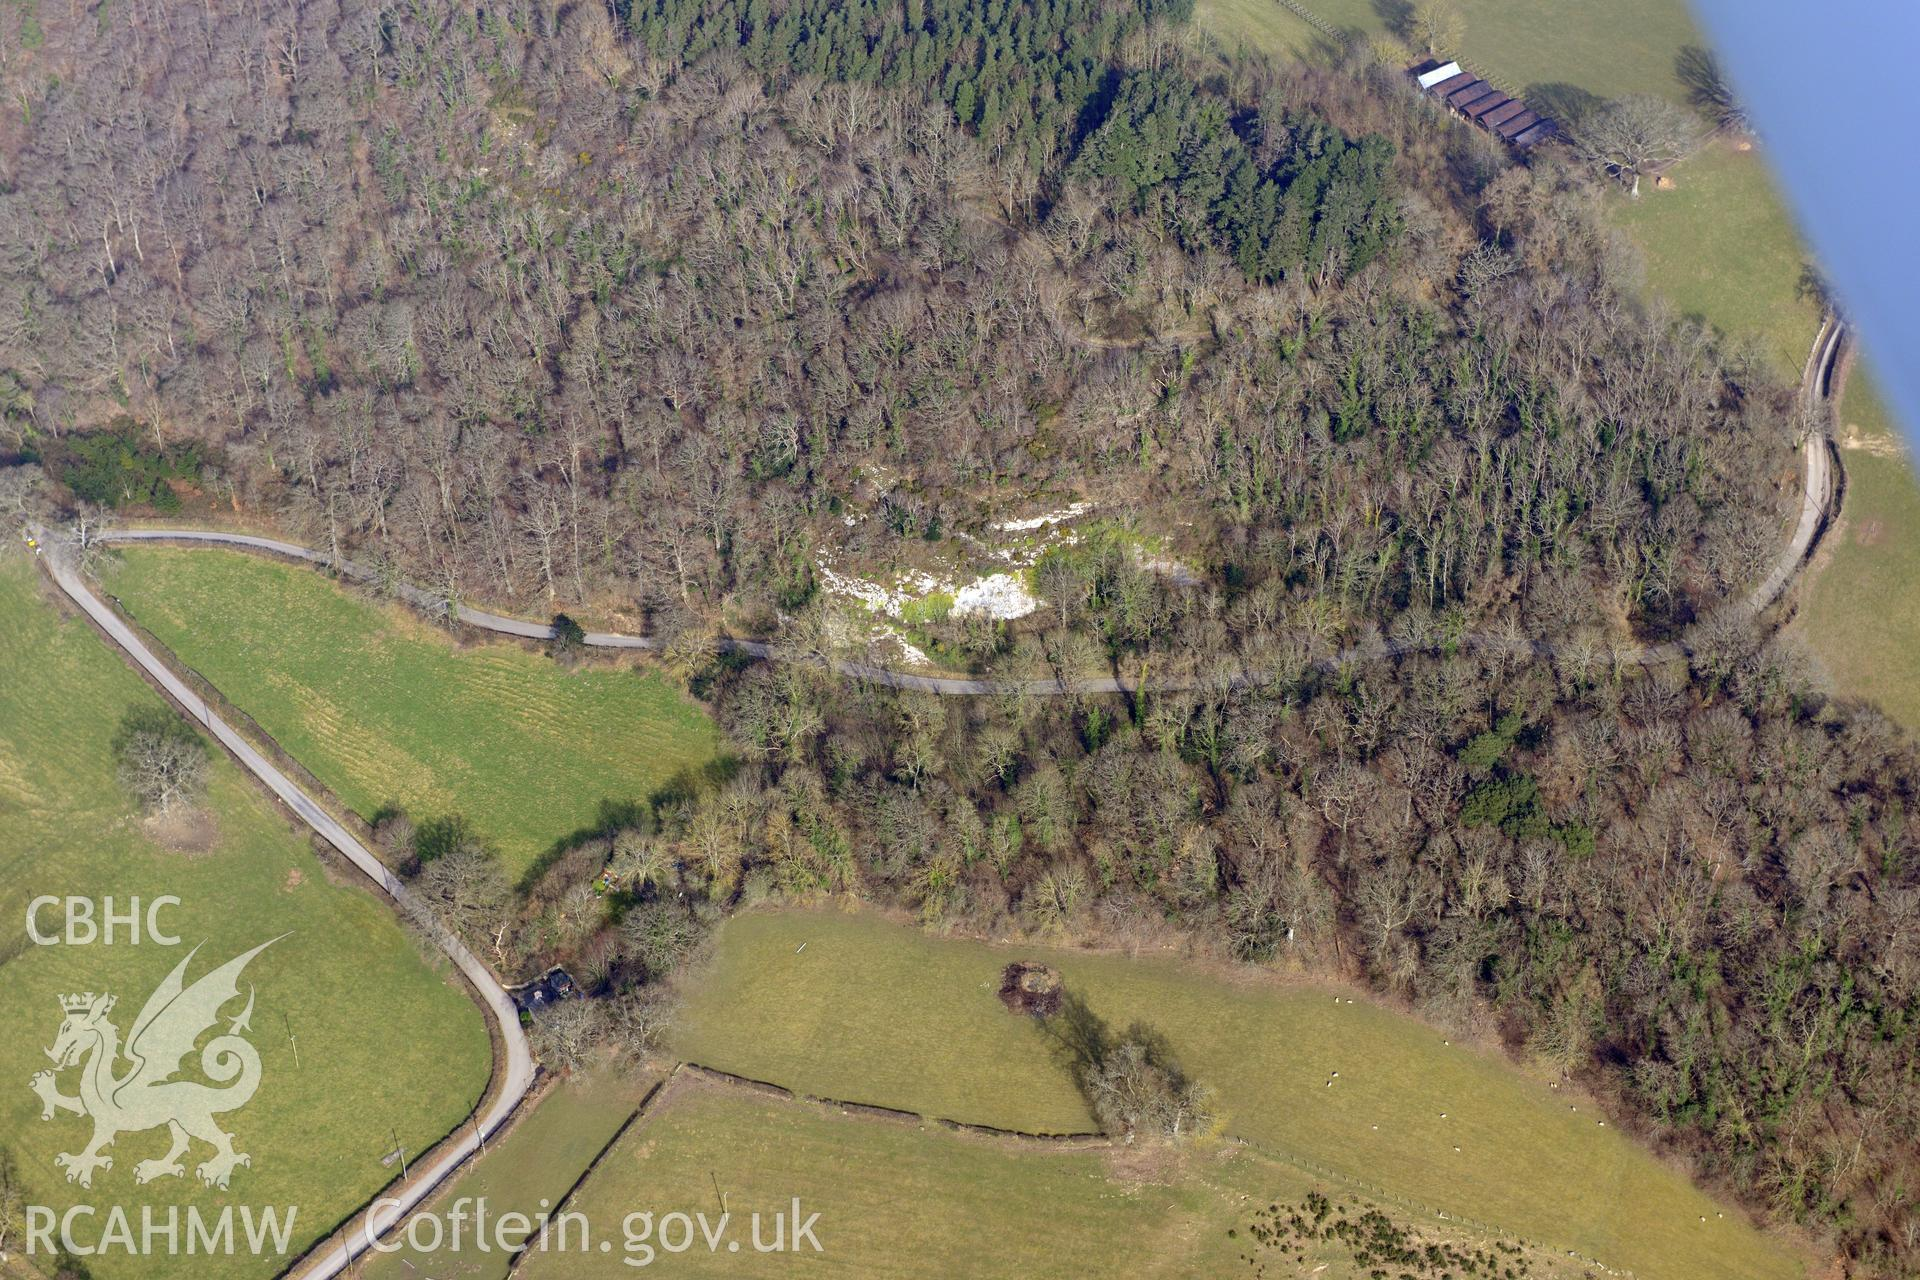 Bont-Newydd cave, Bont-newydd, north west of Denbigh. Oblique aerial photograph taken during the Royal Commission?s programme of archaeological aerial reconnaissance by Toby Driver on 28th February 2013.